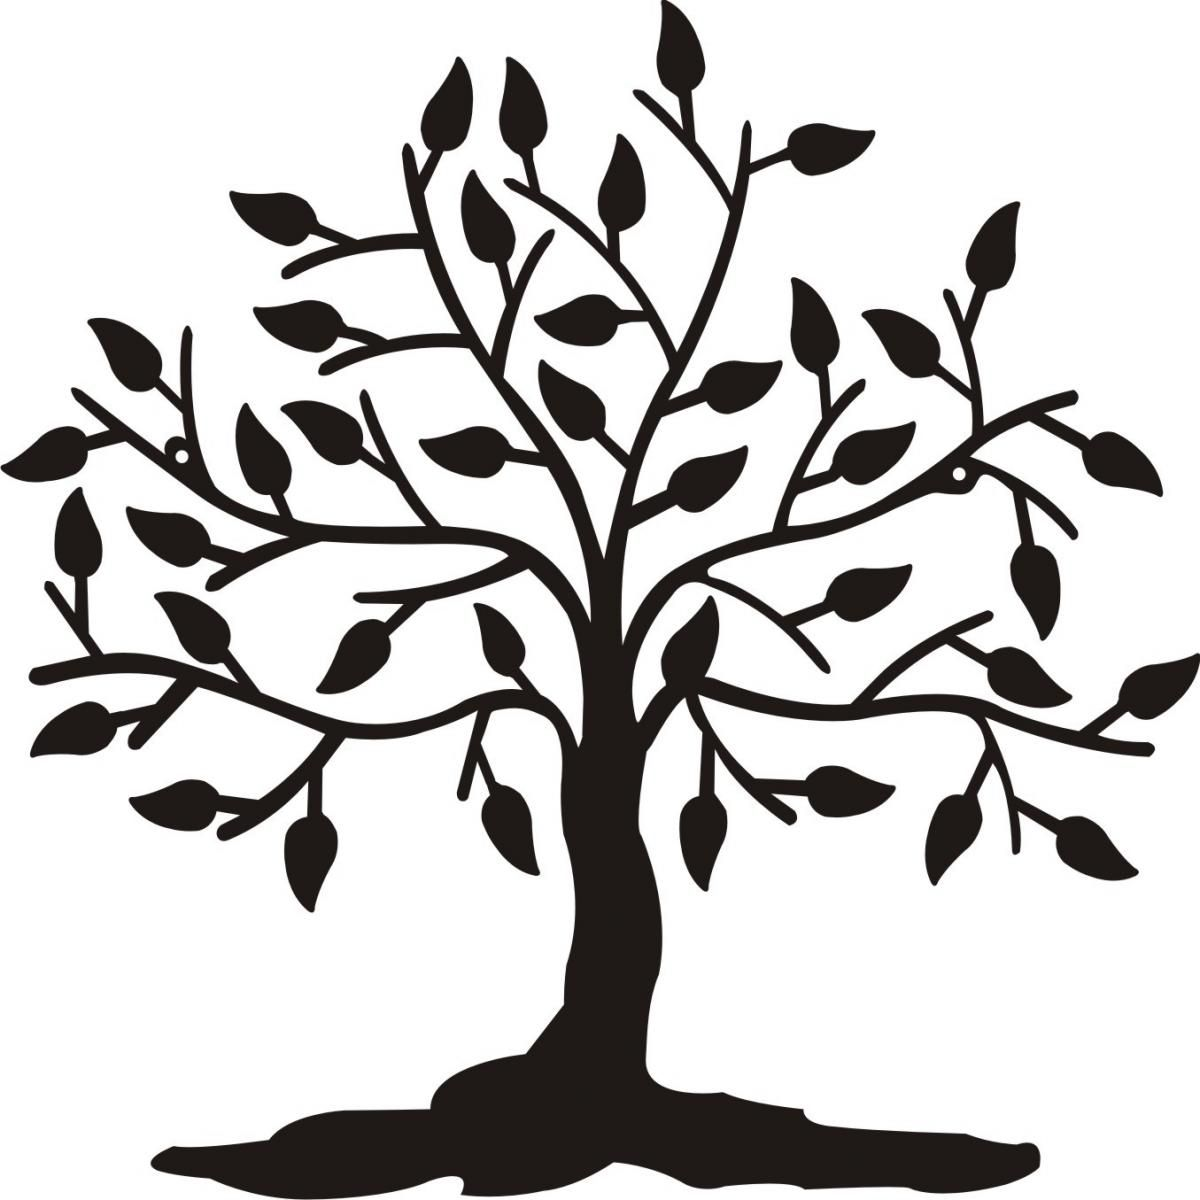 Pin By Colinet On Trees Tree Of Life Art Tree Silhouette Black And White Tree